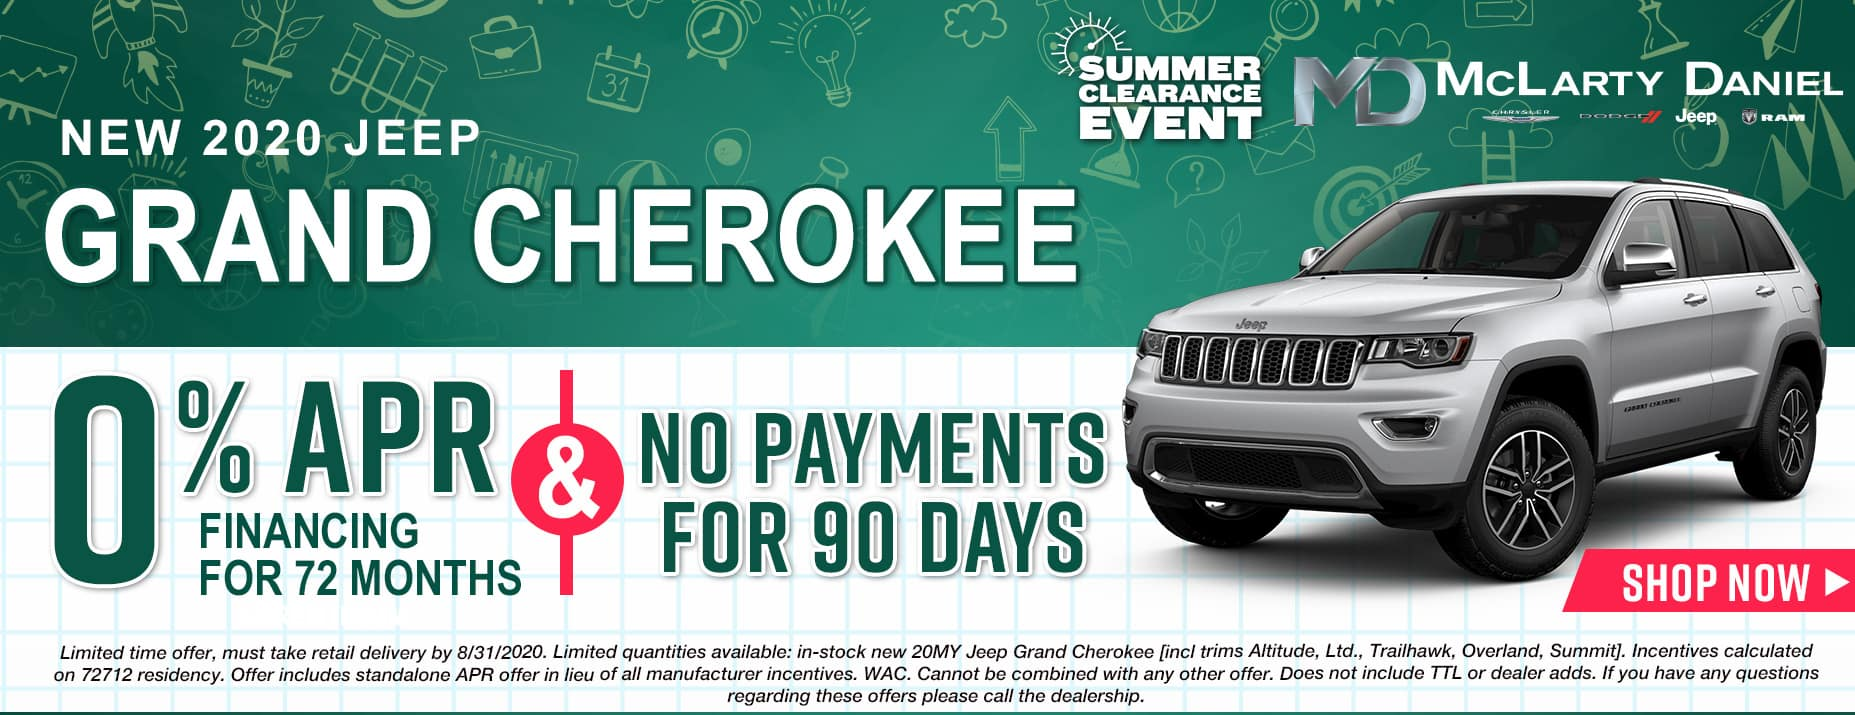 0% APR for 72 months and NO PAYMENTS FOR 90 DAYS available on 2020 Jeep Grand Cherokee!